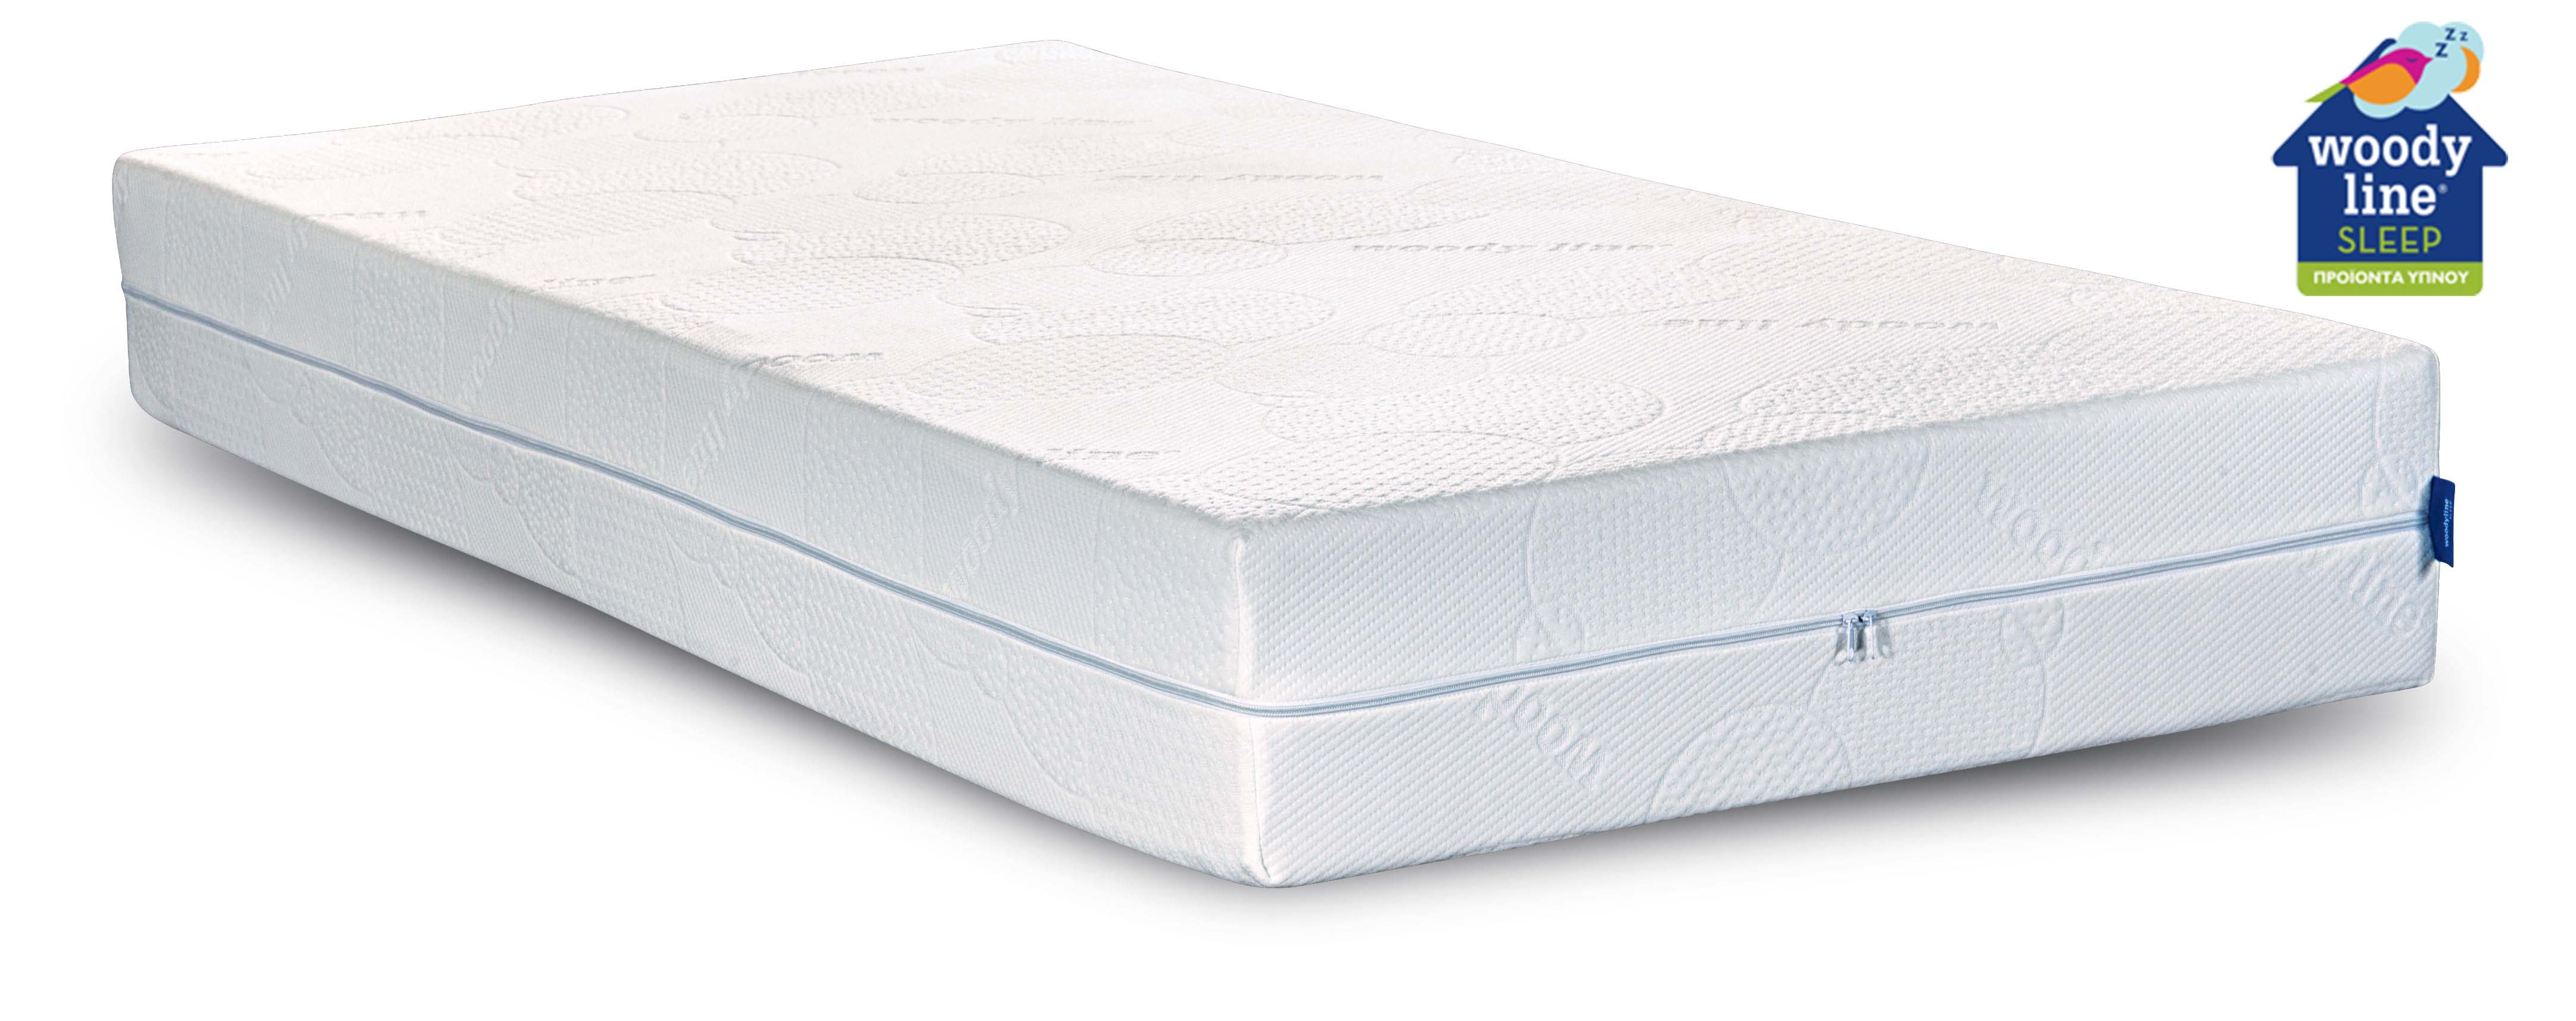 MATTRESS EXTRA SPECIAL MEMORY 110x190 or 110x198